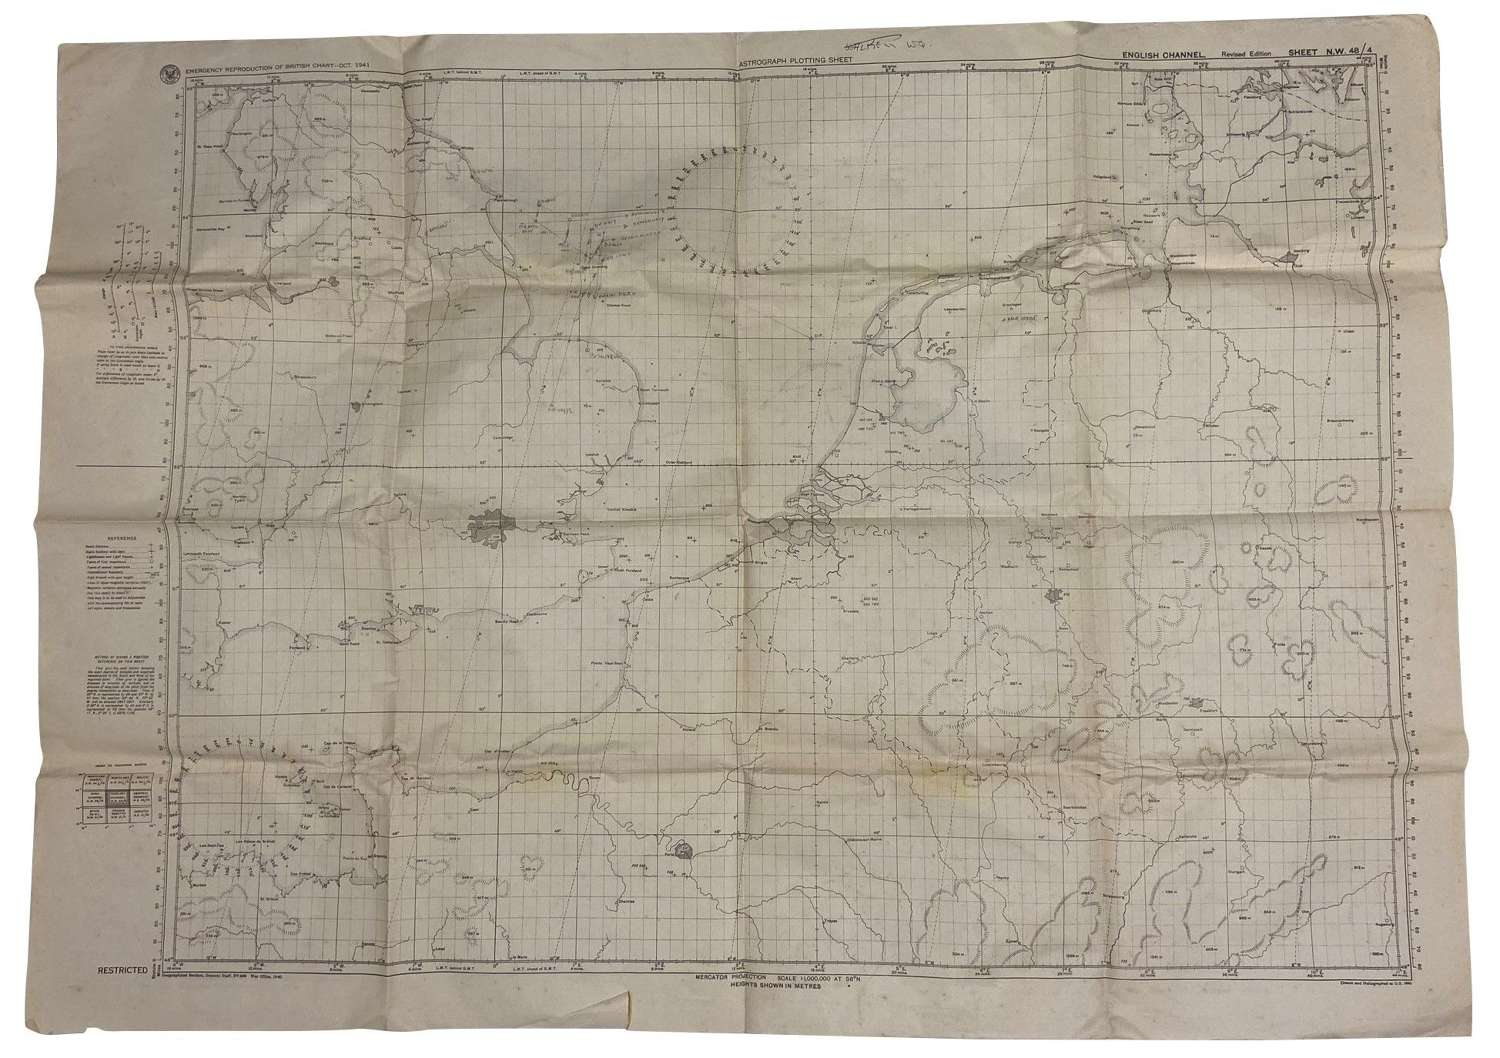 Original 1941 Dated USAAF Astrograph Plotting Map - English Channel